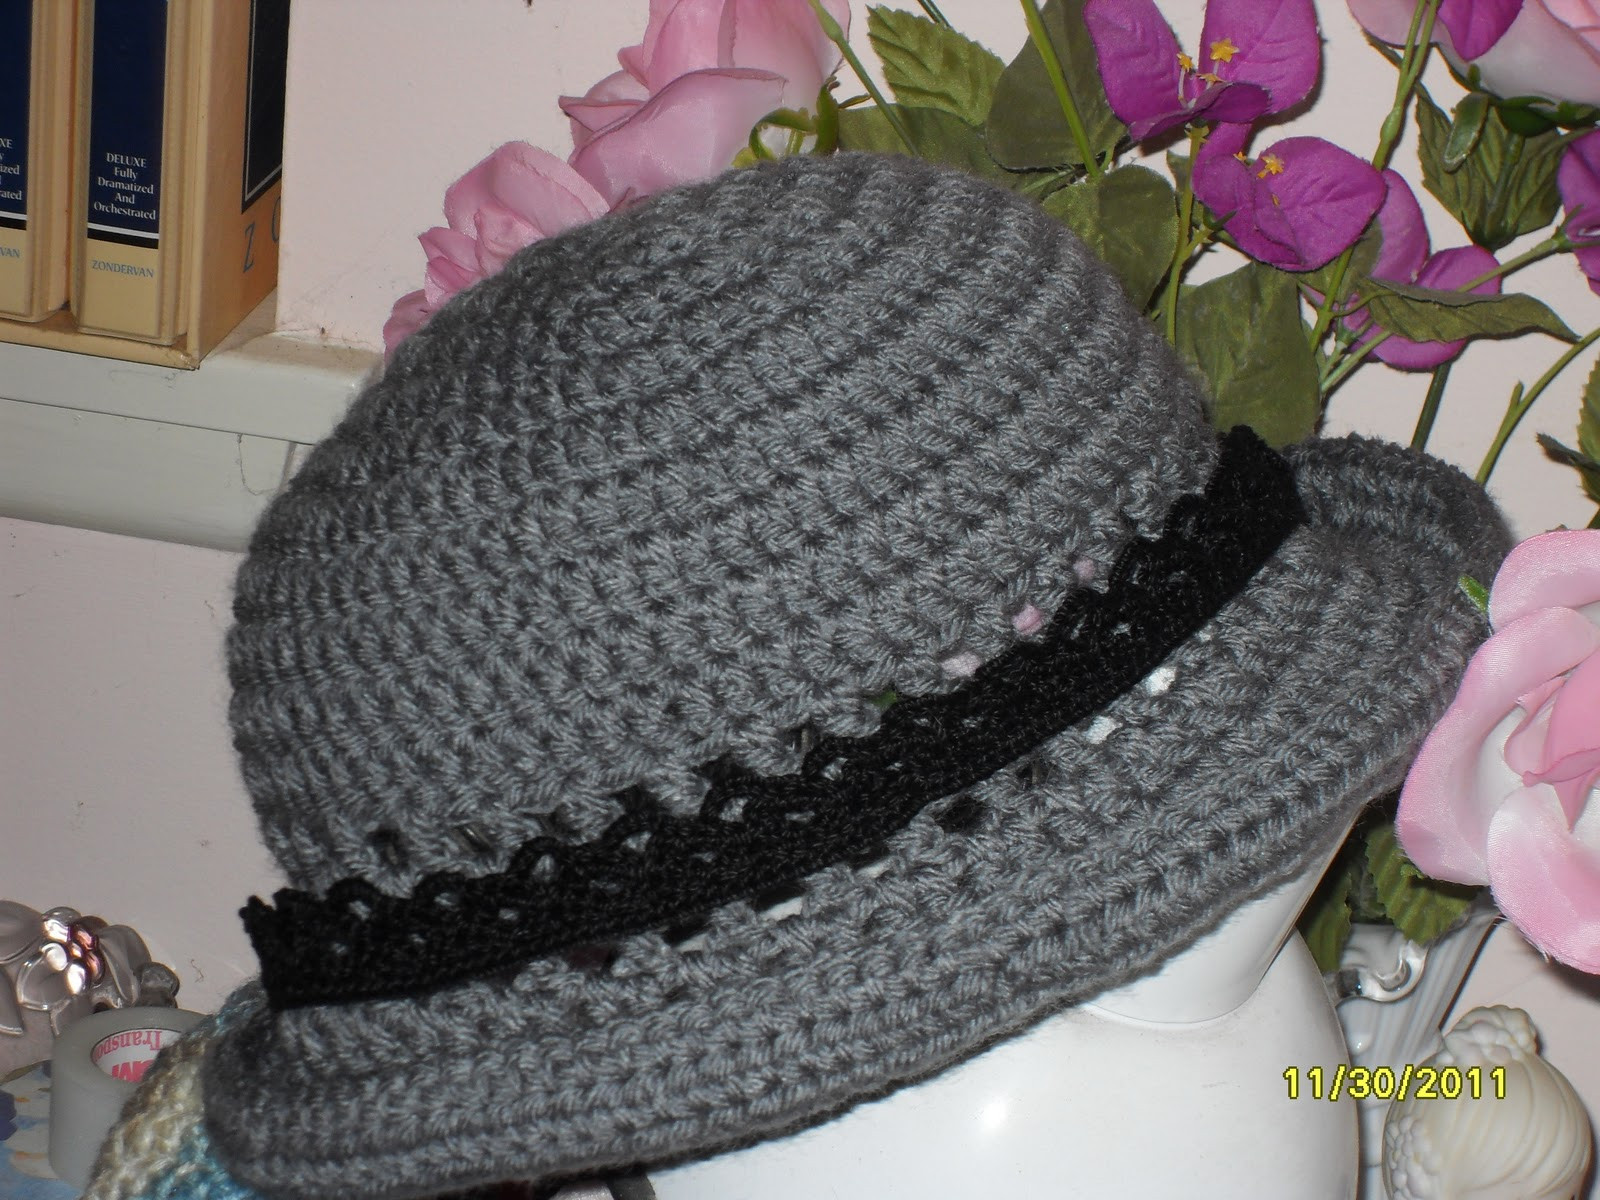 Free Easy Crochet Patterns Fresh Free Crochet Hat and Scarf Patterns Crochet and Knitting Of Superb 49 Images Free Easy Crochet Patterns